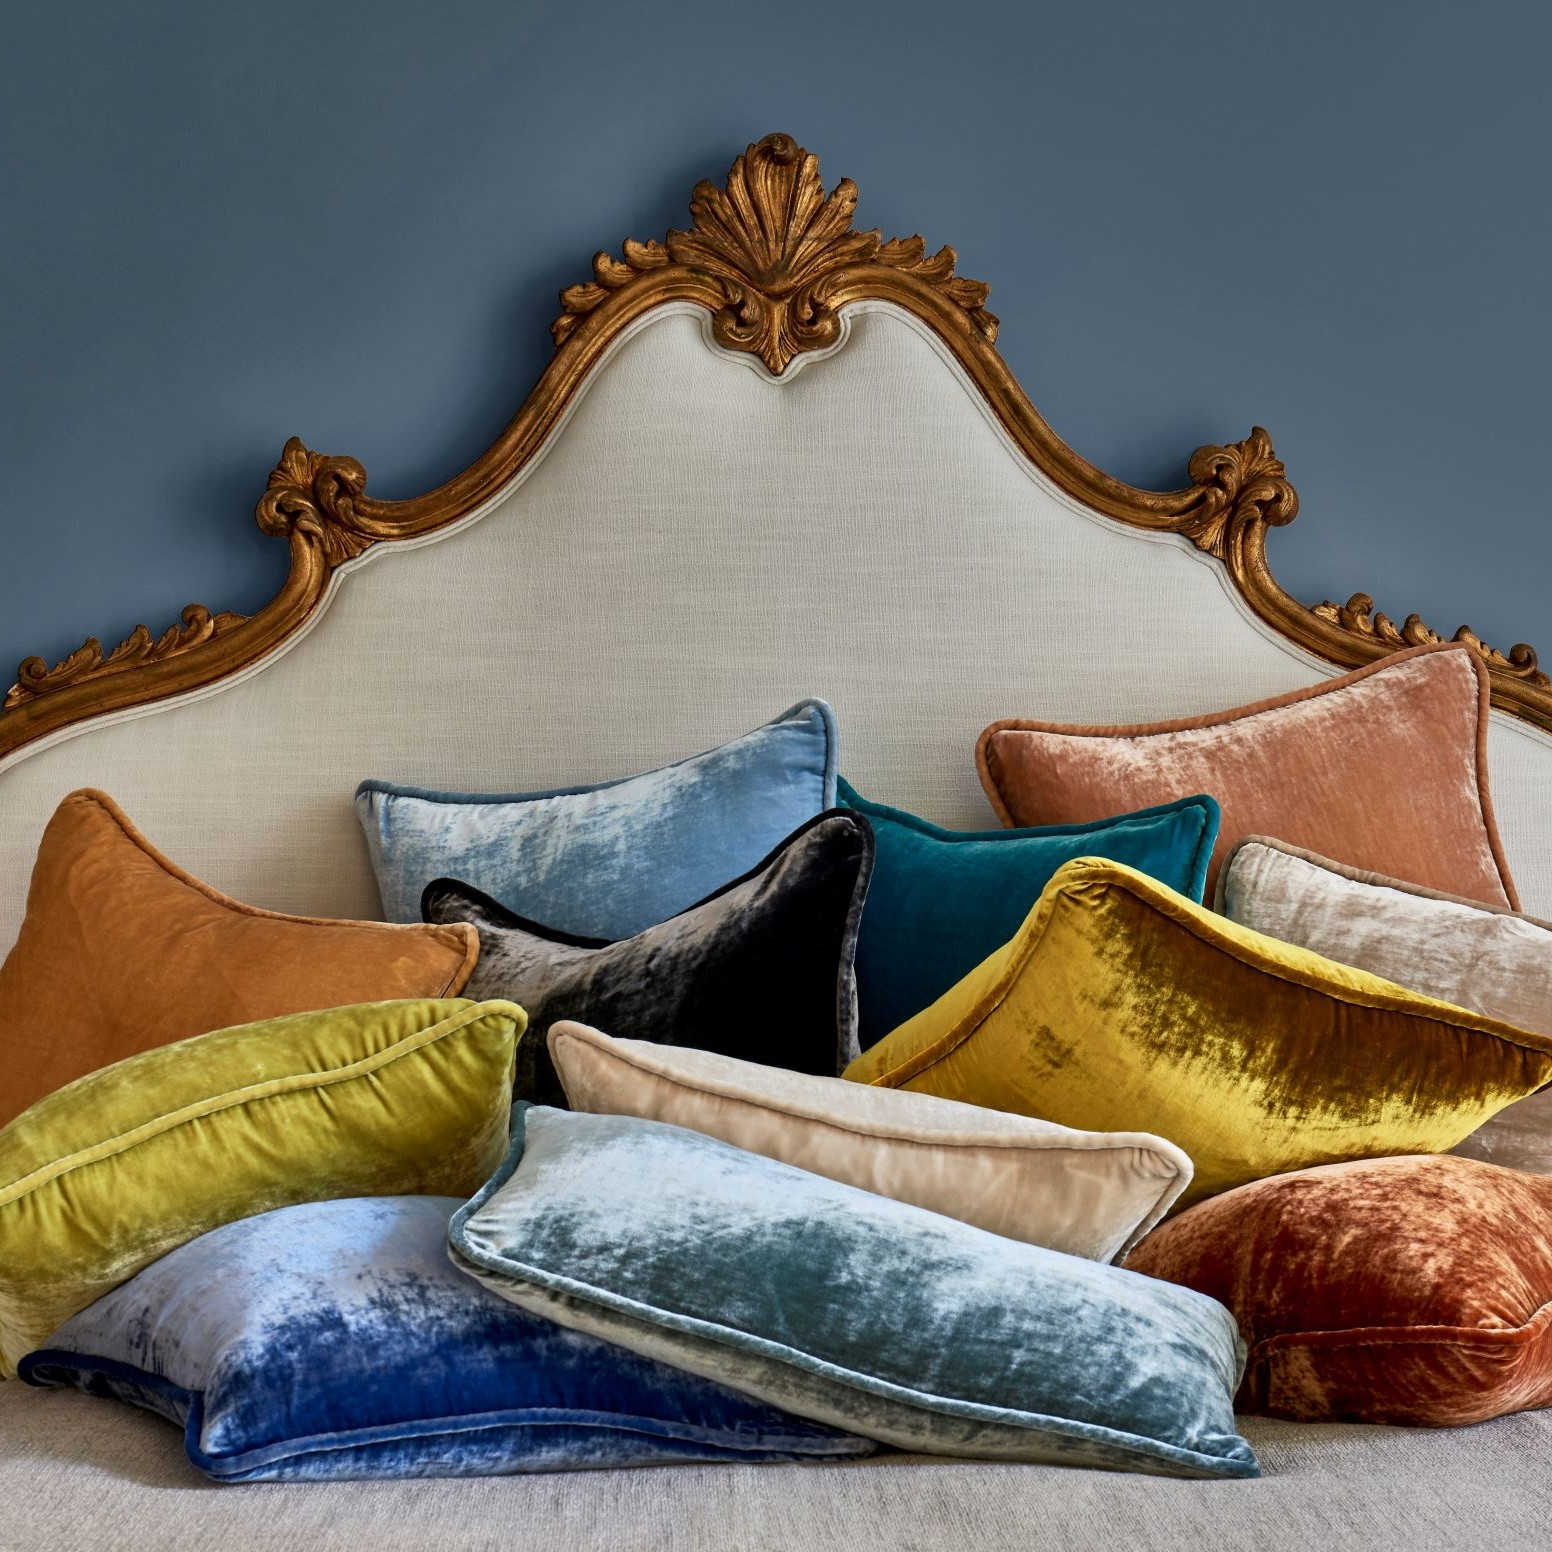 VINTAGE VELVET DECORATIVE PILLOWS